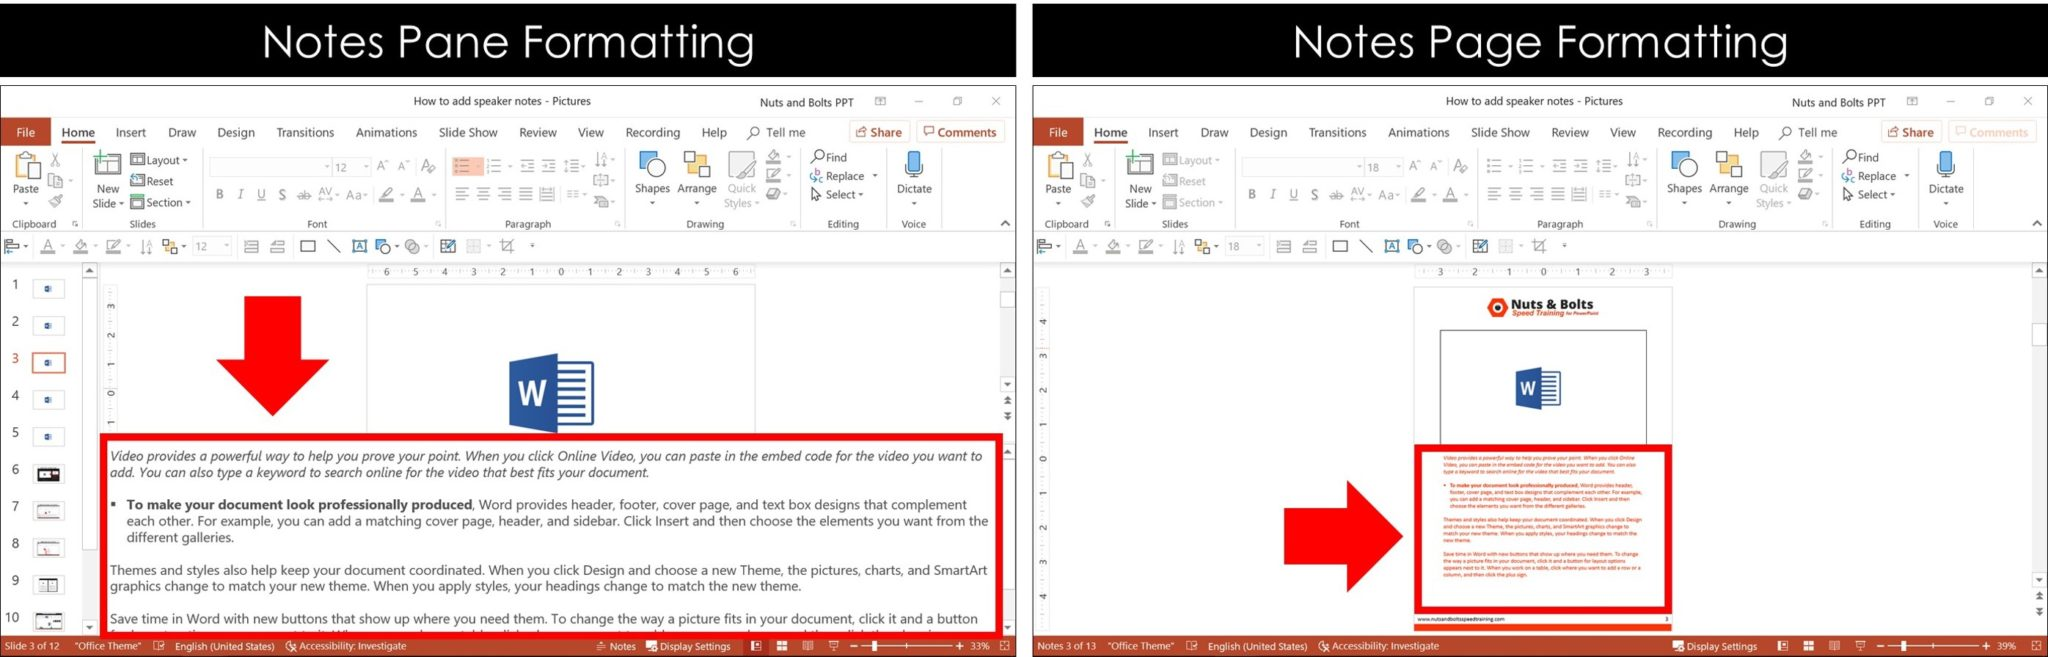 Comparison between what kind of text formatting appears in the Notes Pane view versus the Notes Page view